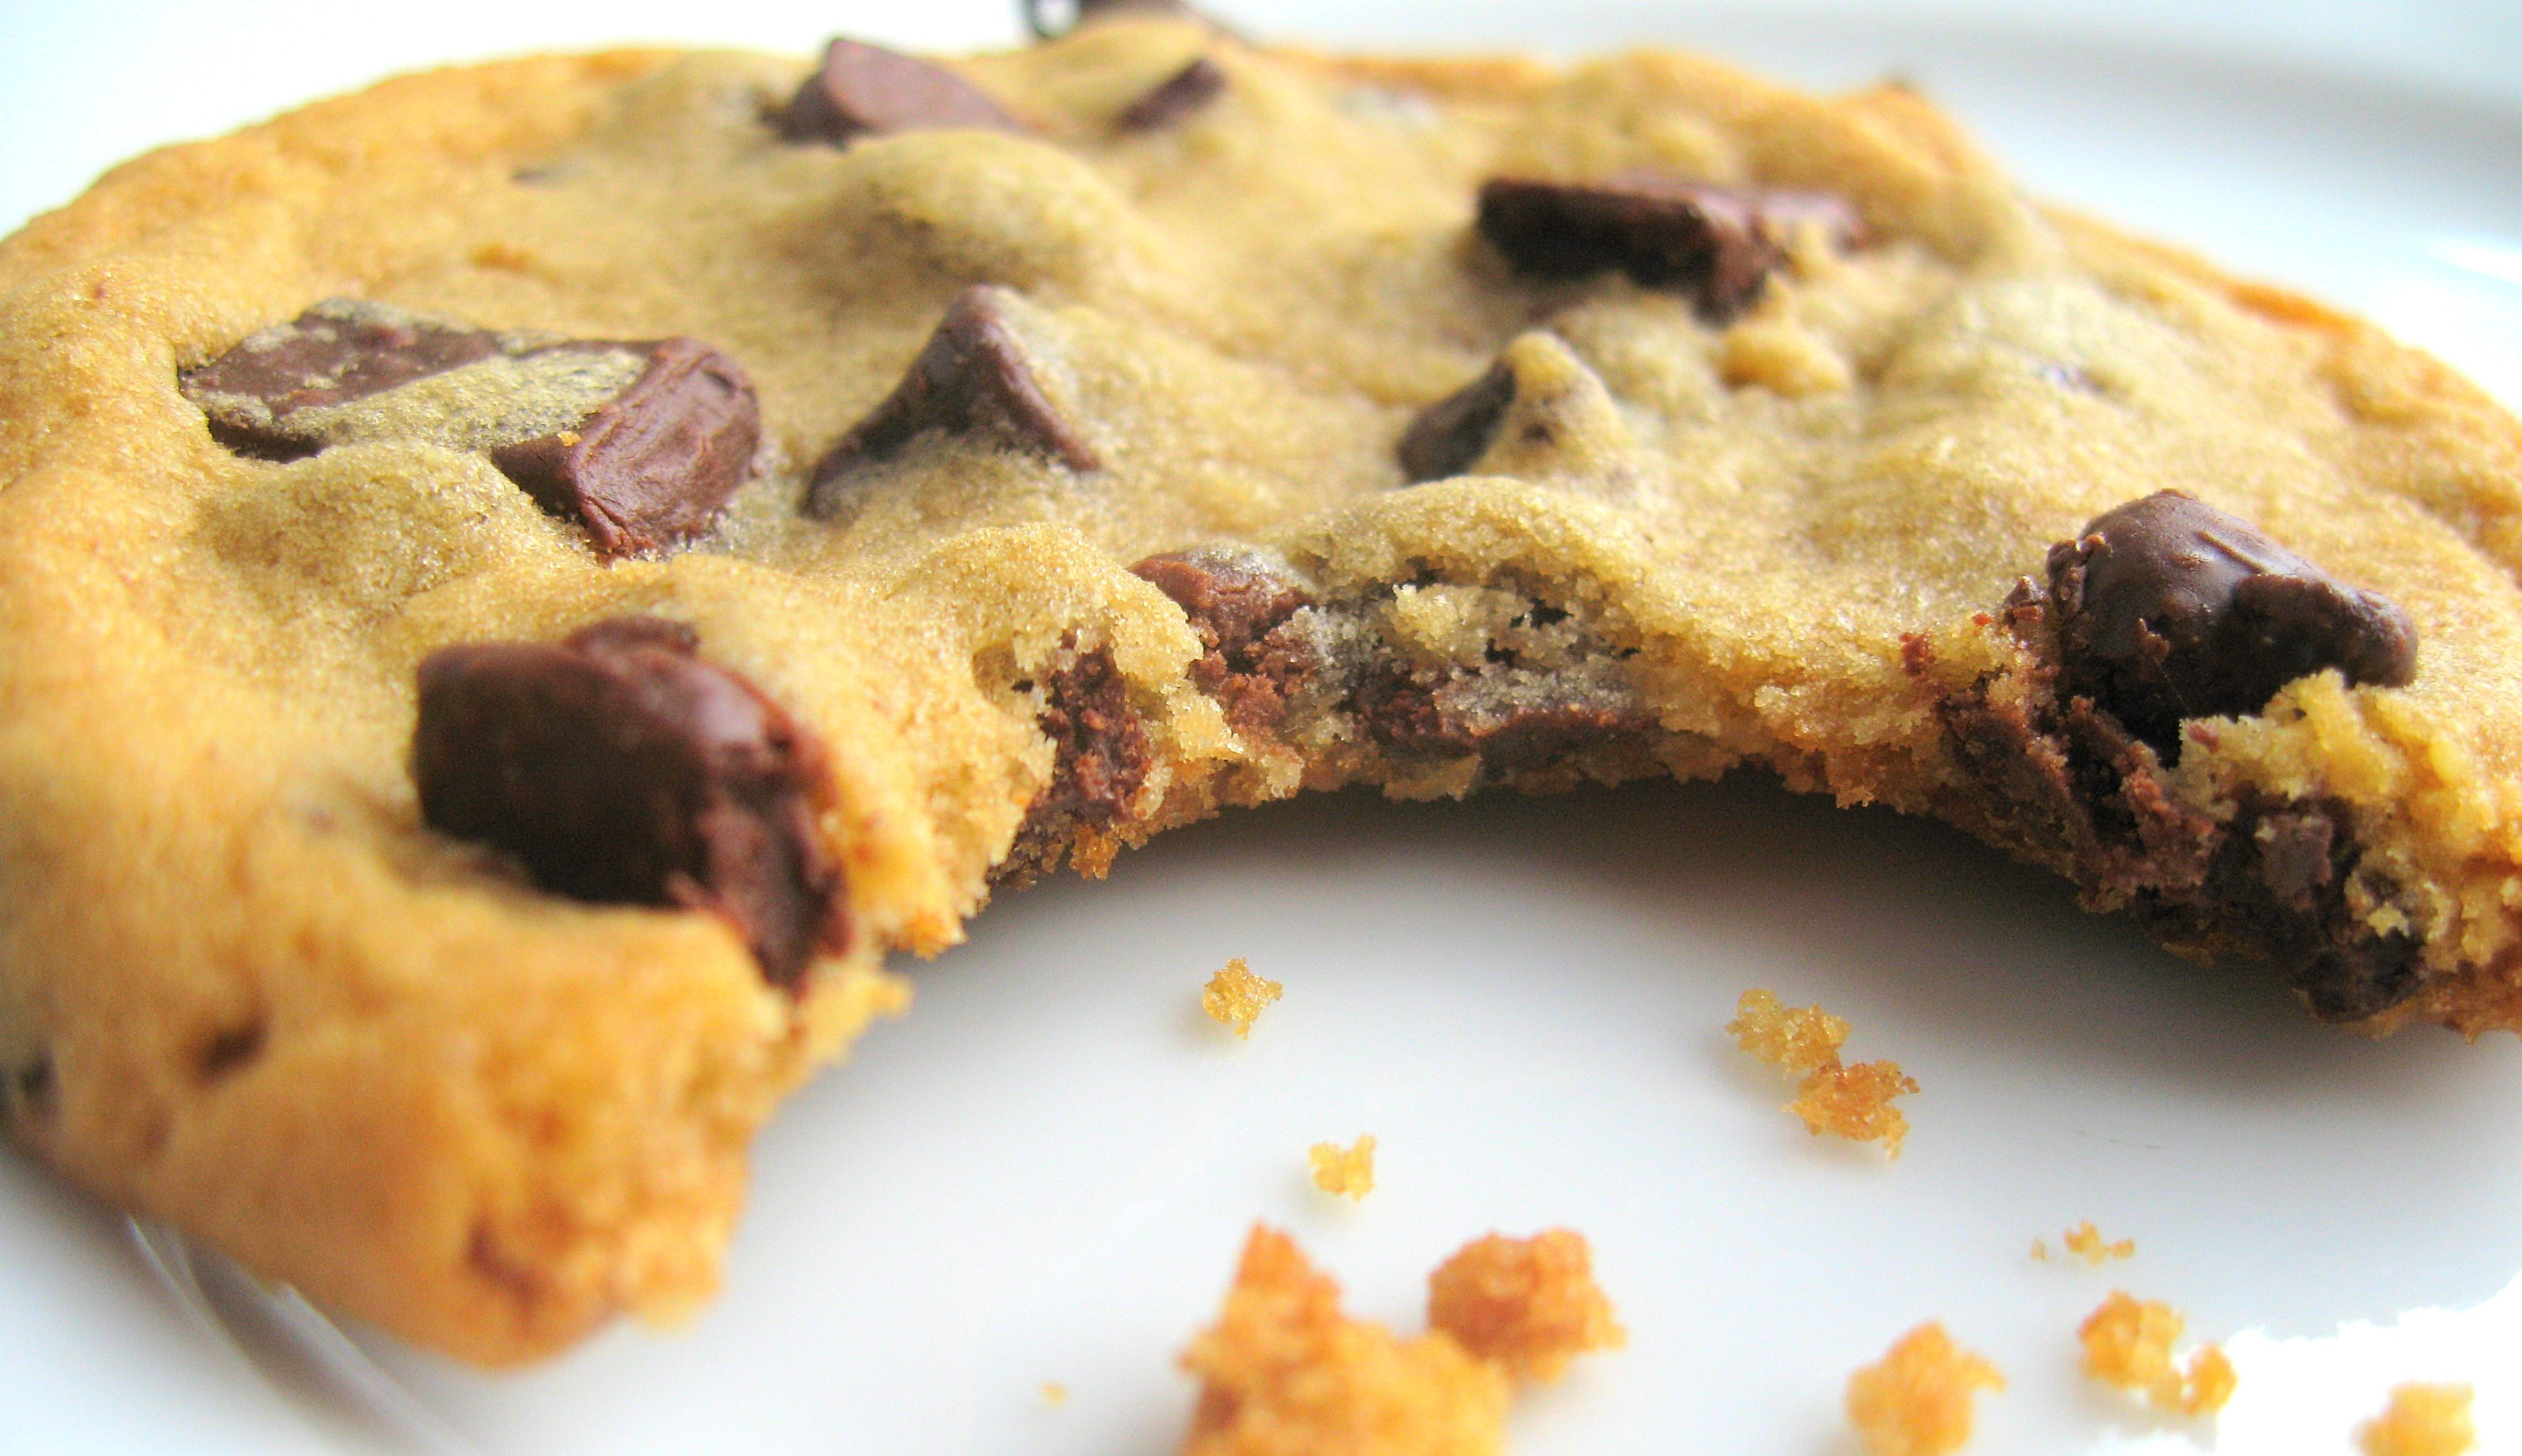 10. Chocolate-chip cookie